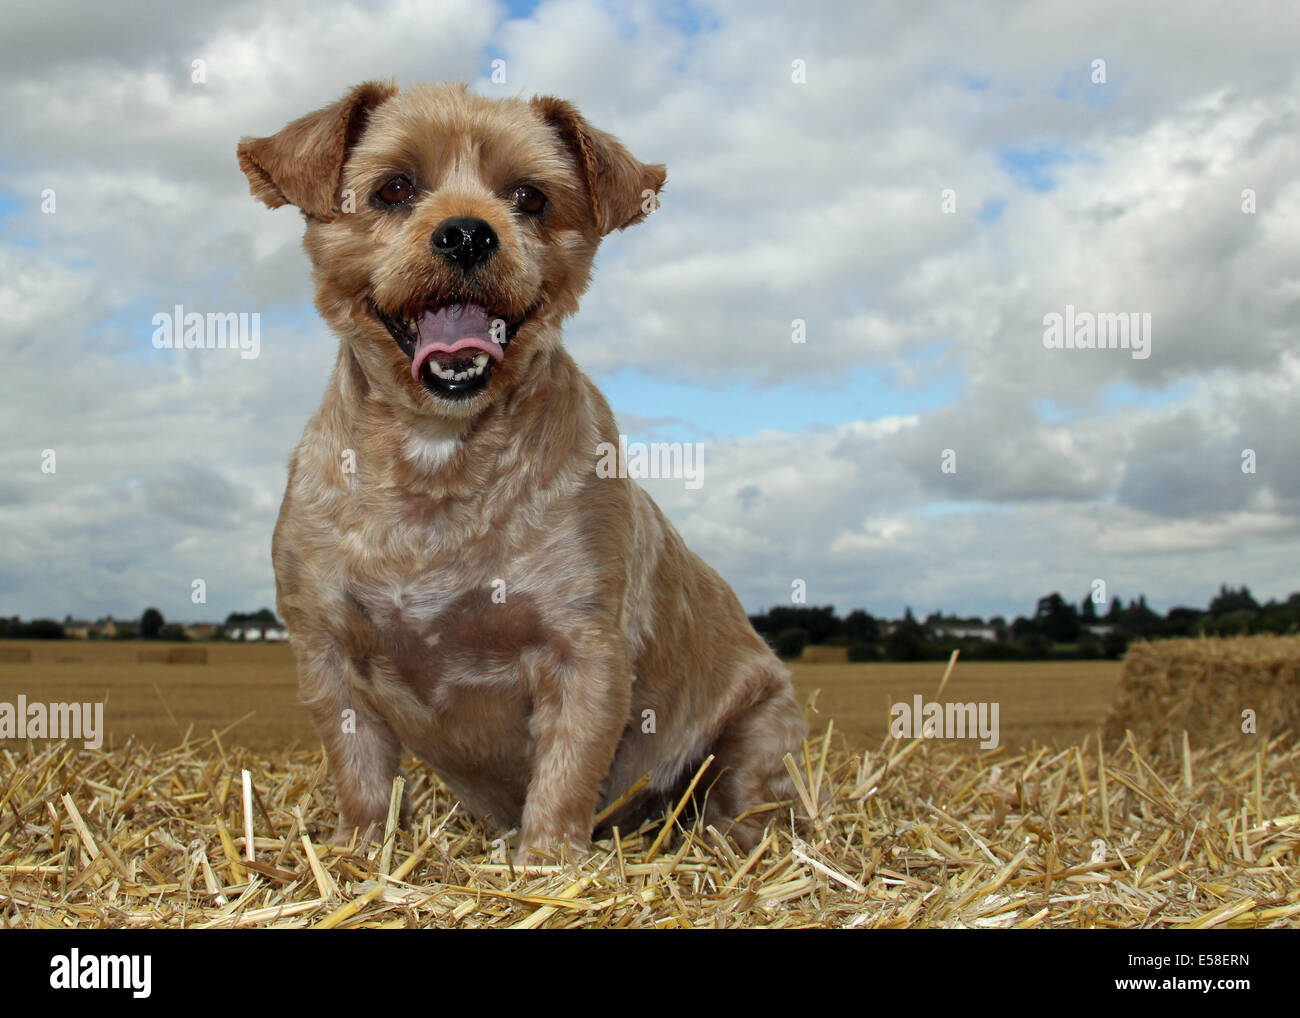 Dogs - Stock Image